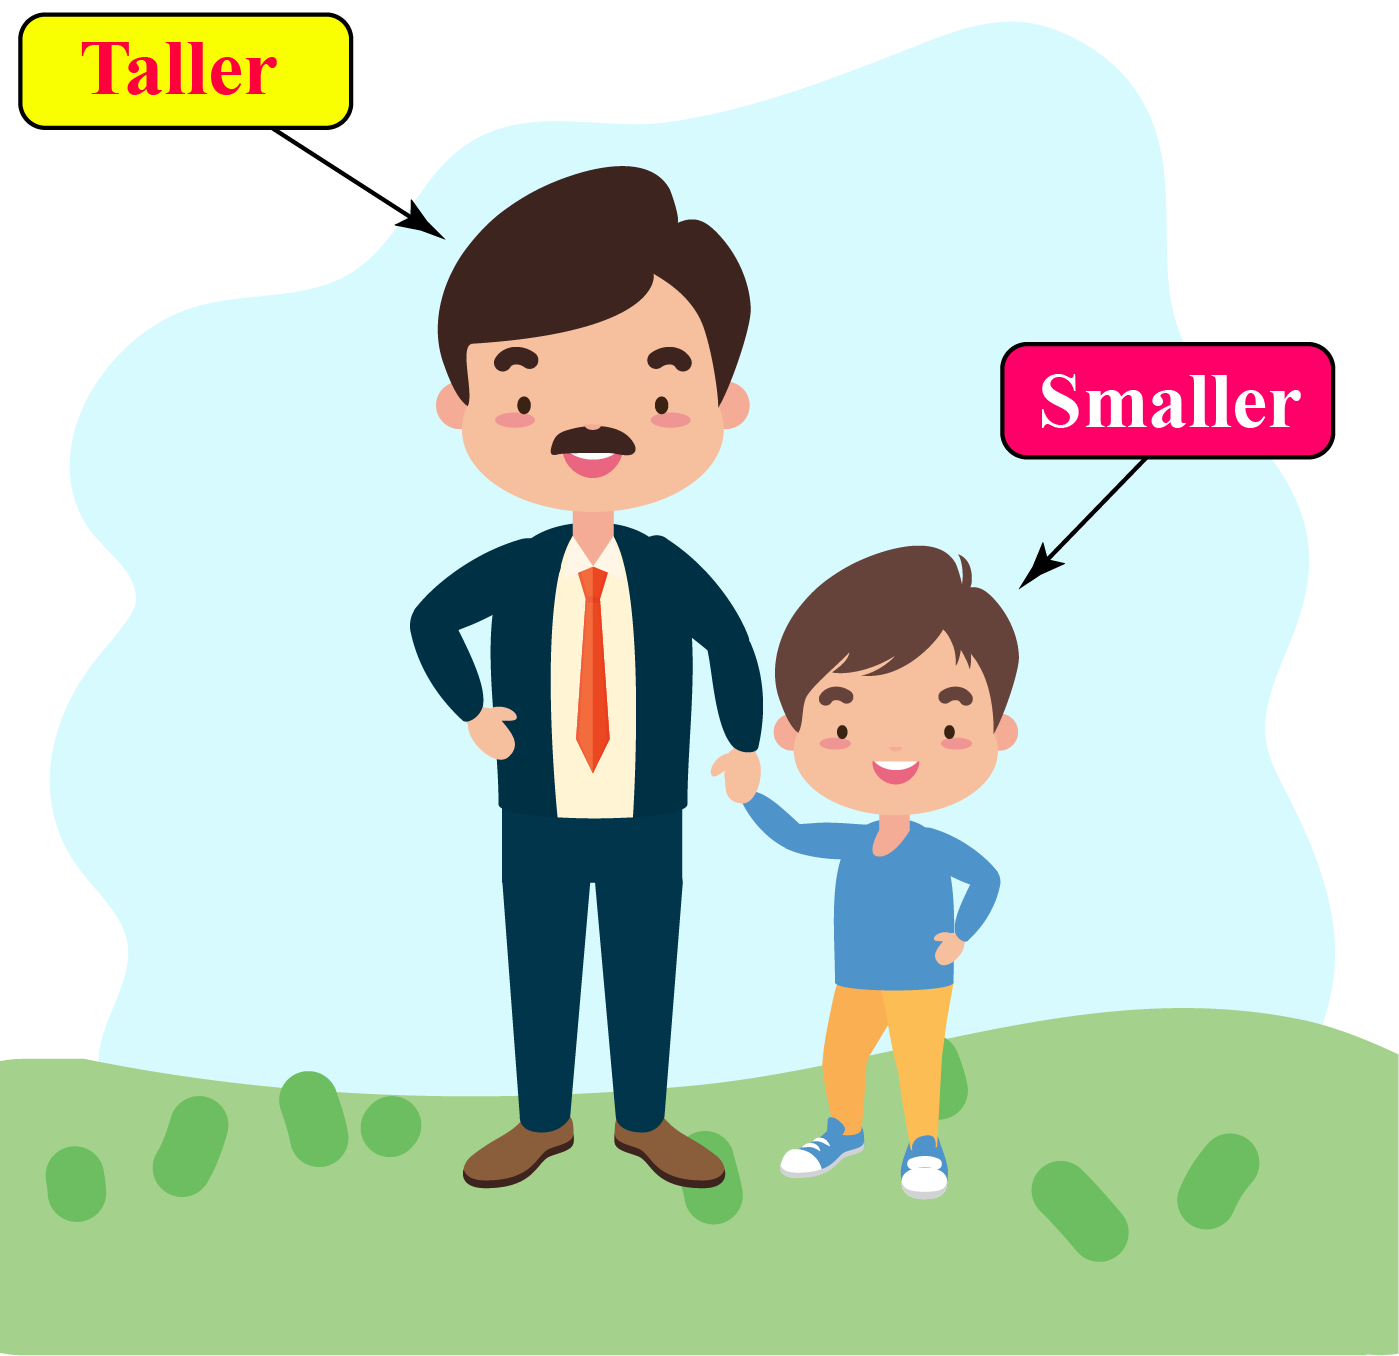 comparison of height of father and son